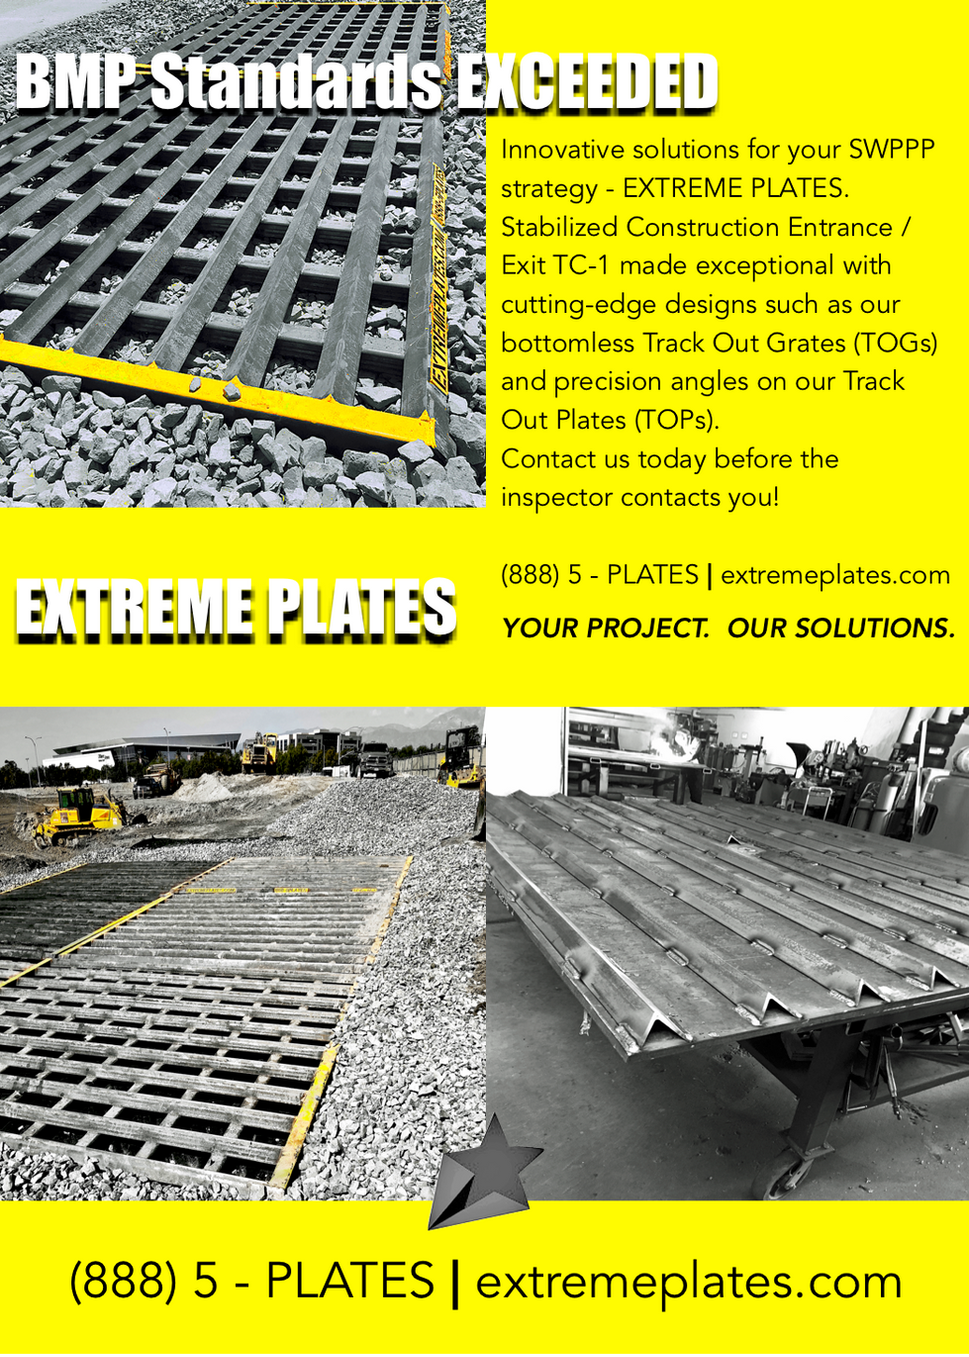 Shaker Plates, Rumble grates, SWPPP, Rumble plates, Trench plates, road plates